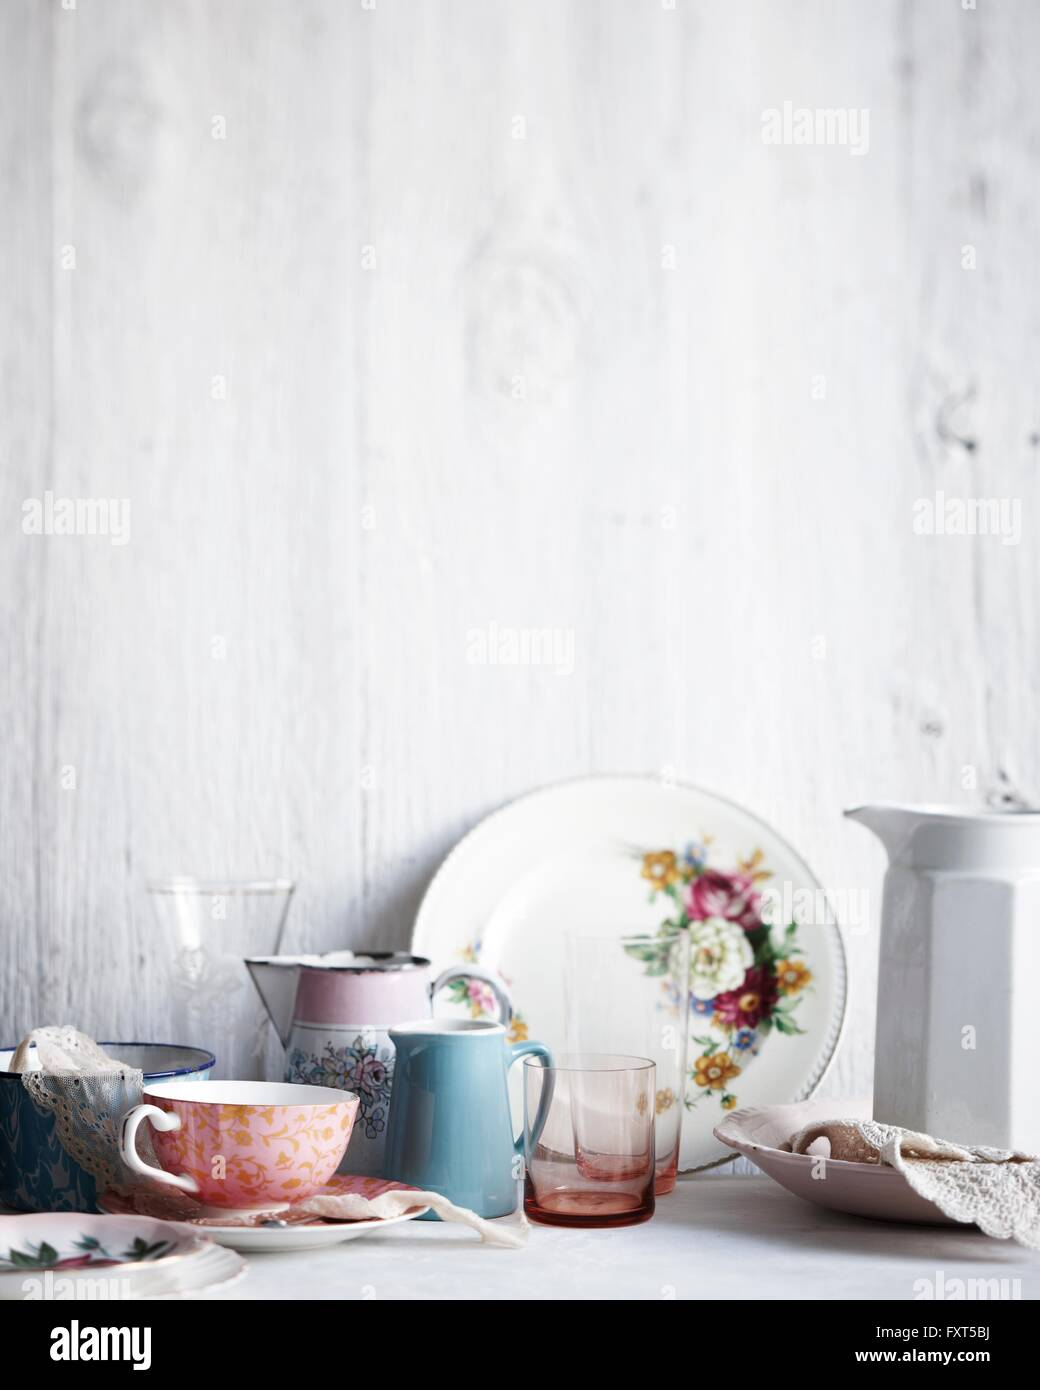 Variety of drinking glasses, plates and jugs on whitewashed table Stock Photo